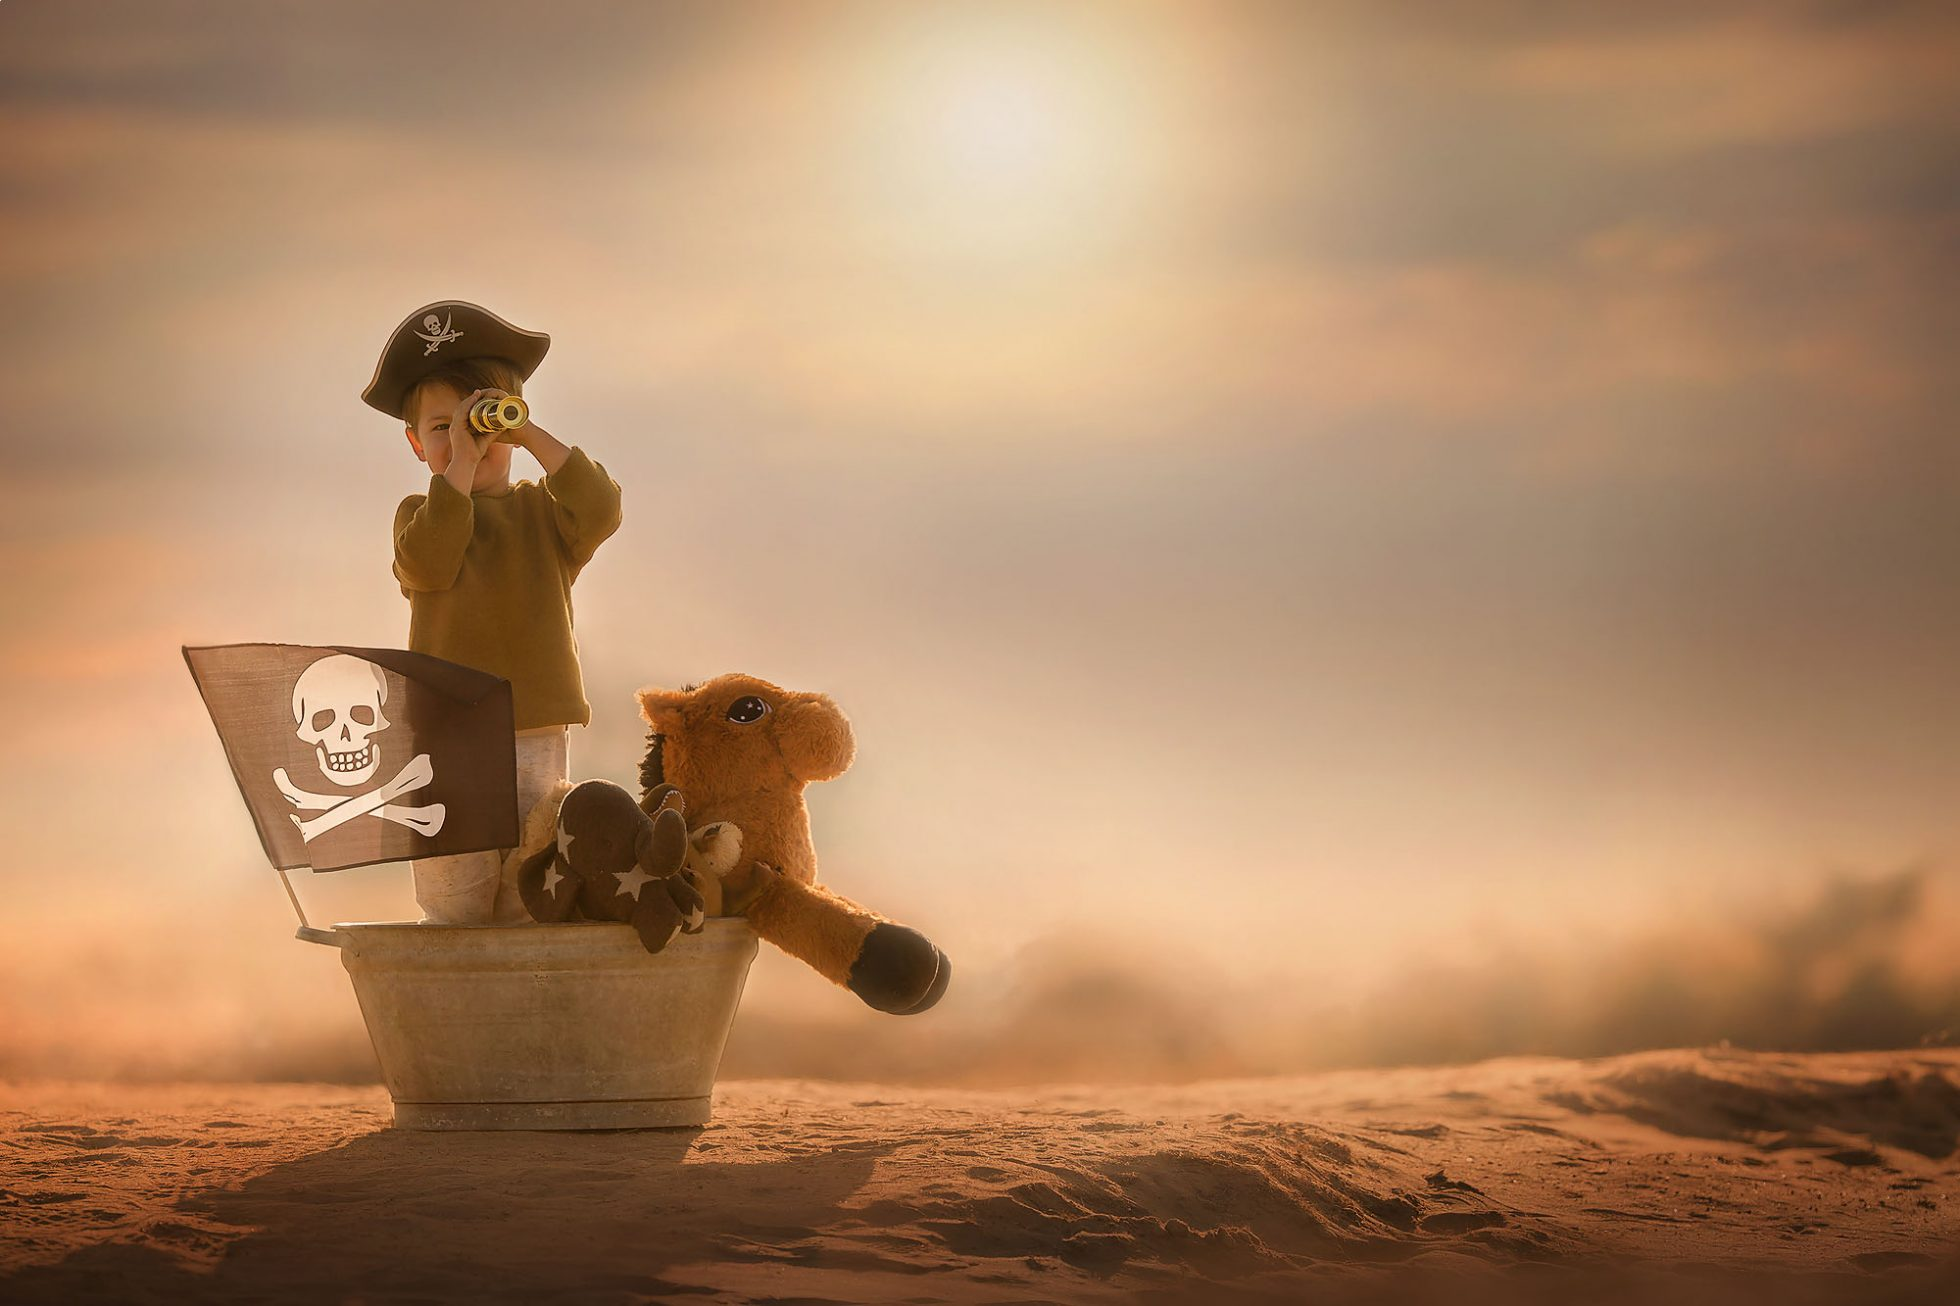 Canon 5D mark III Color image of a little boy pirate standing in a bath tub with toy animals and binoculairs in the desert during sunset by Willie Kers